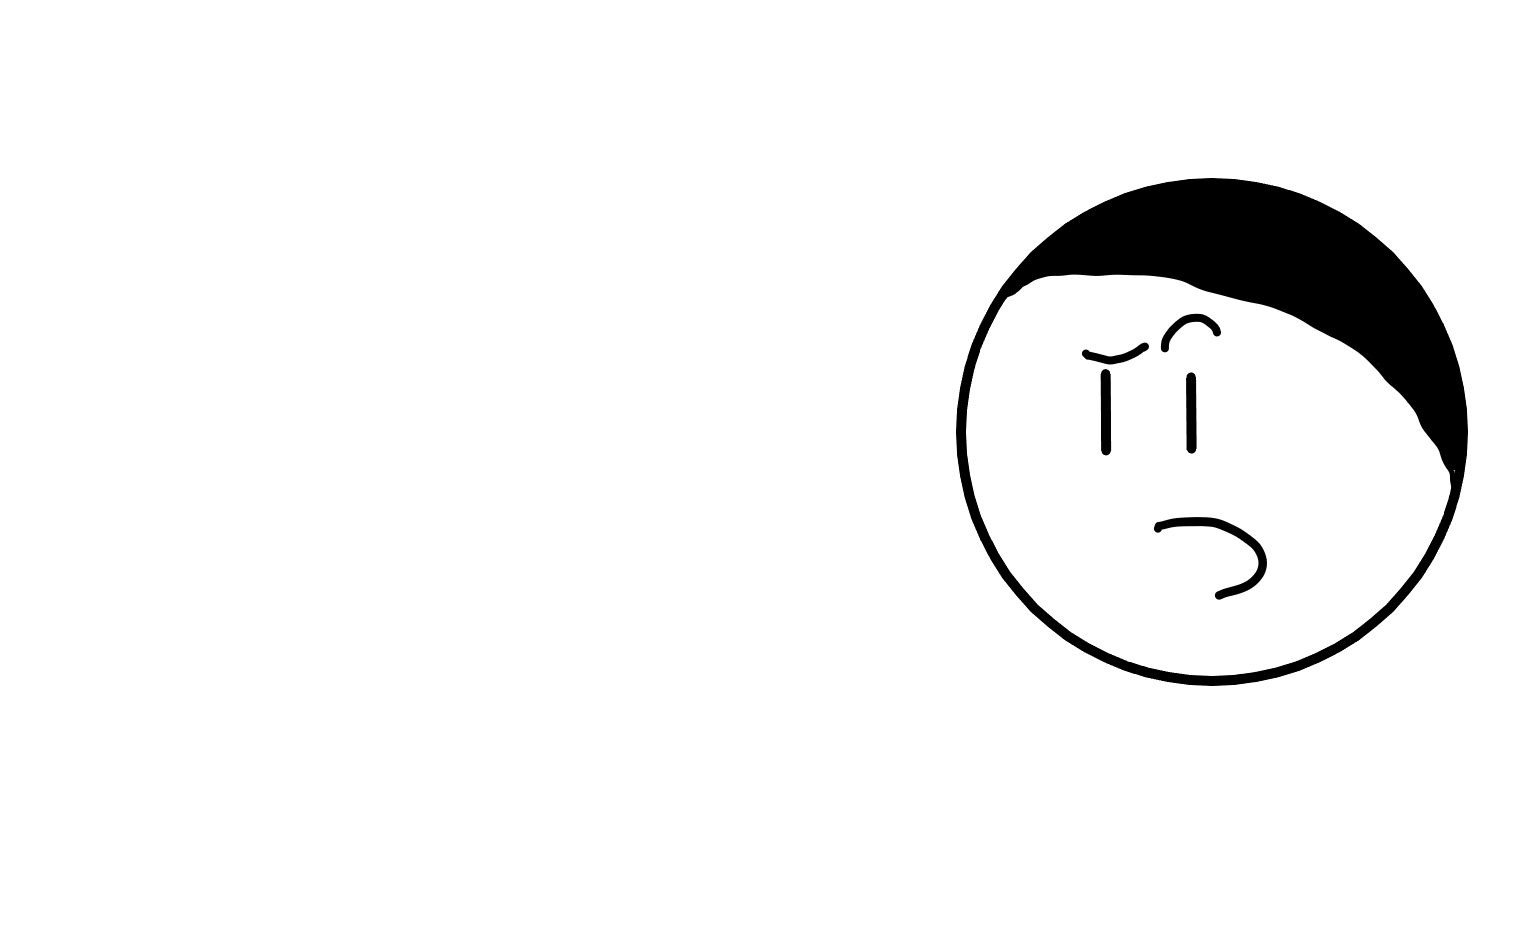 Talking Face - arched brow.png